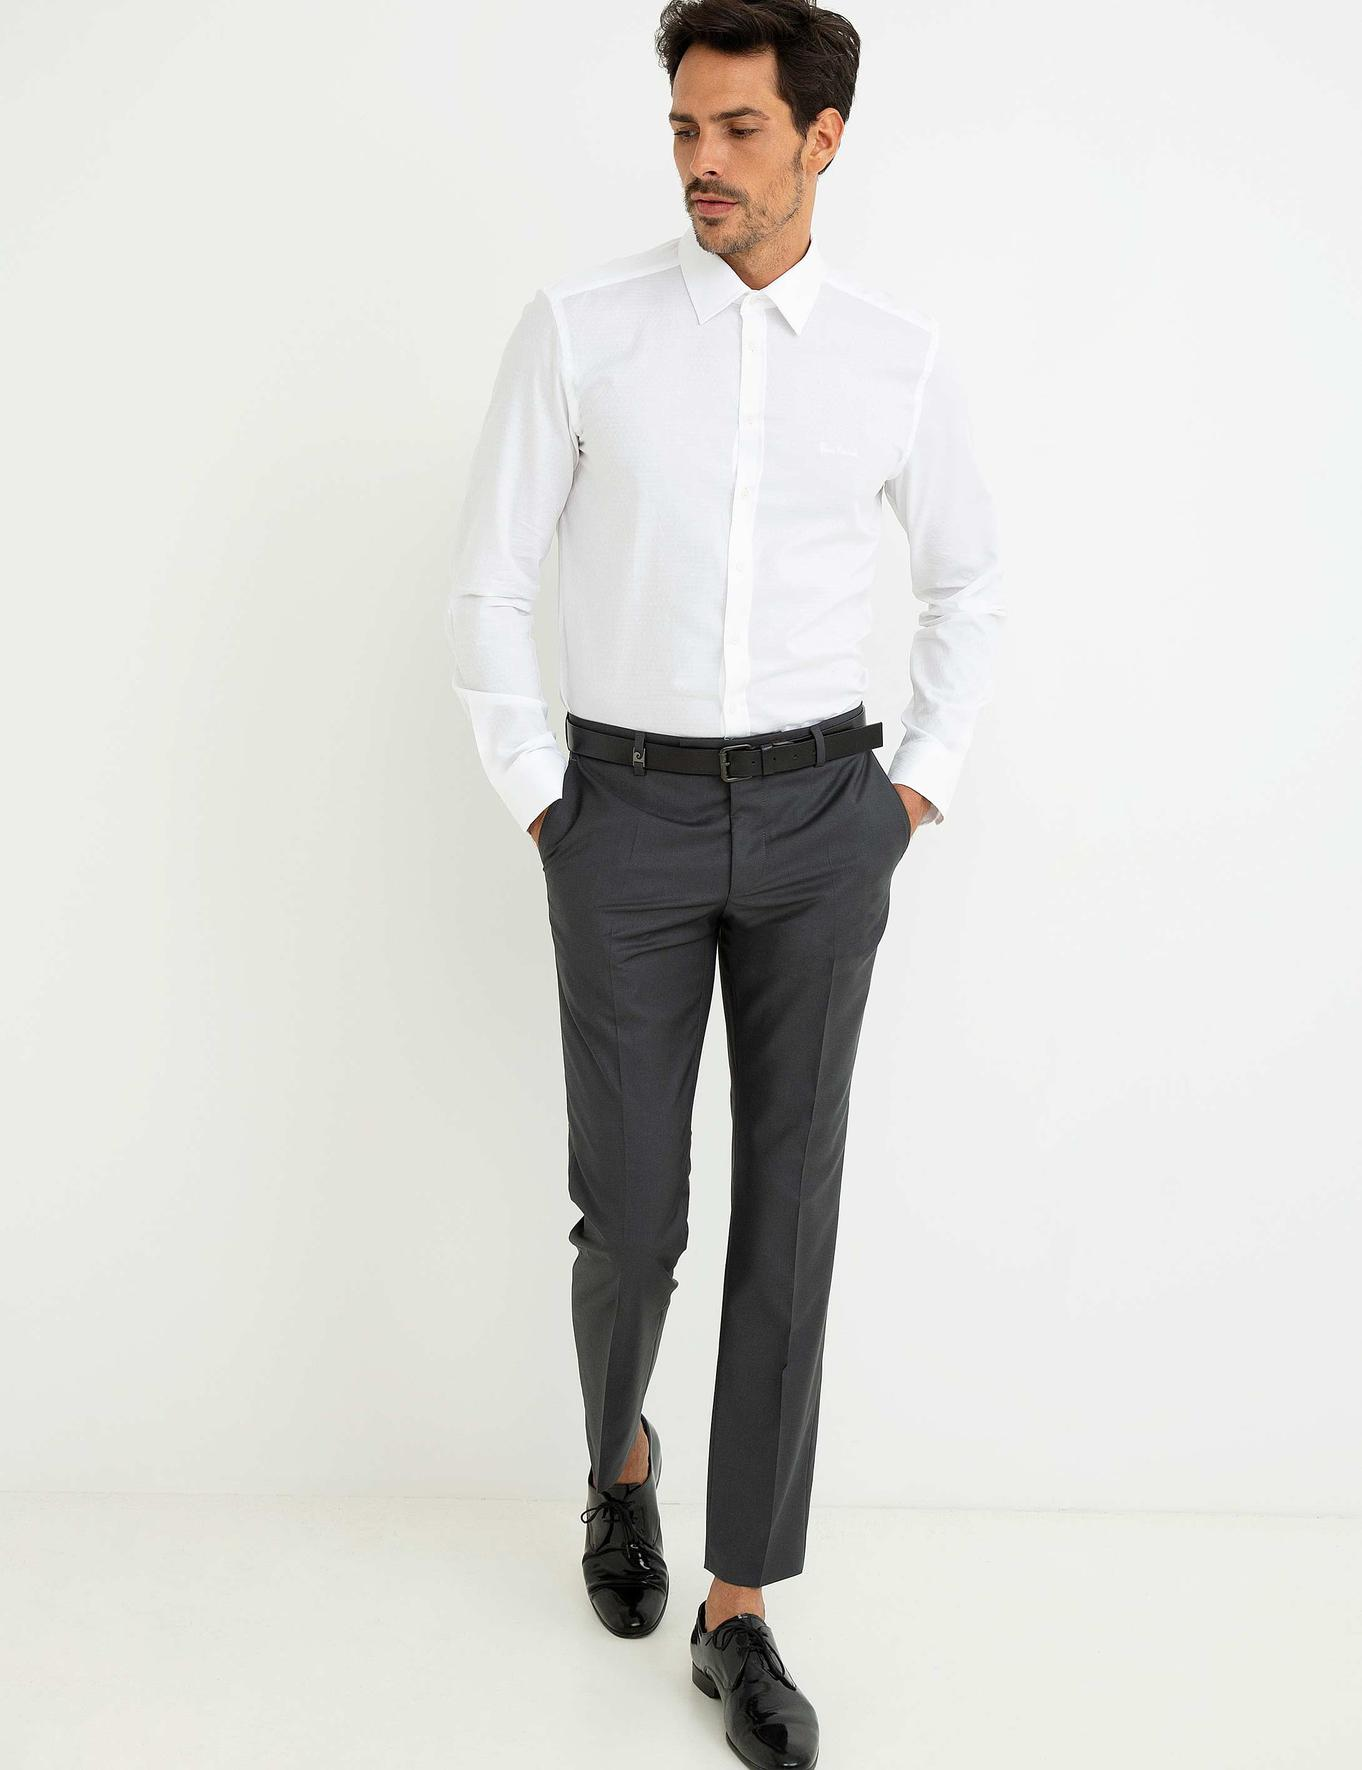 Füme Slim Fit Pantolon